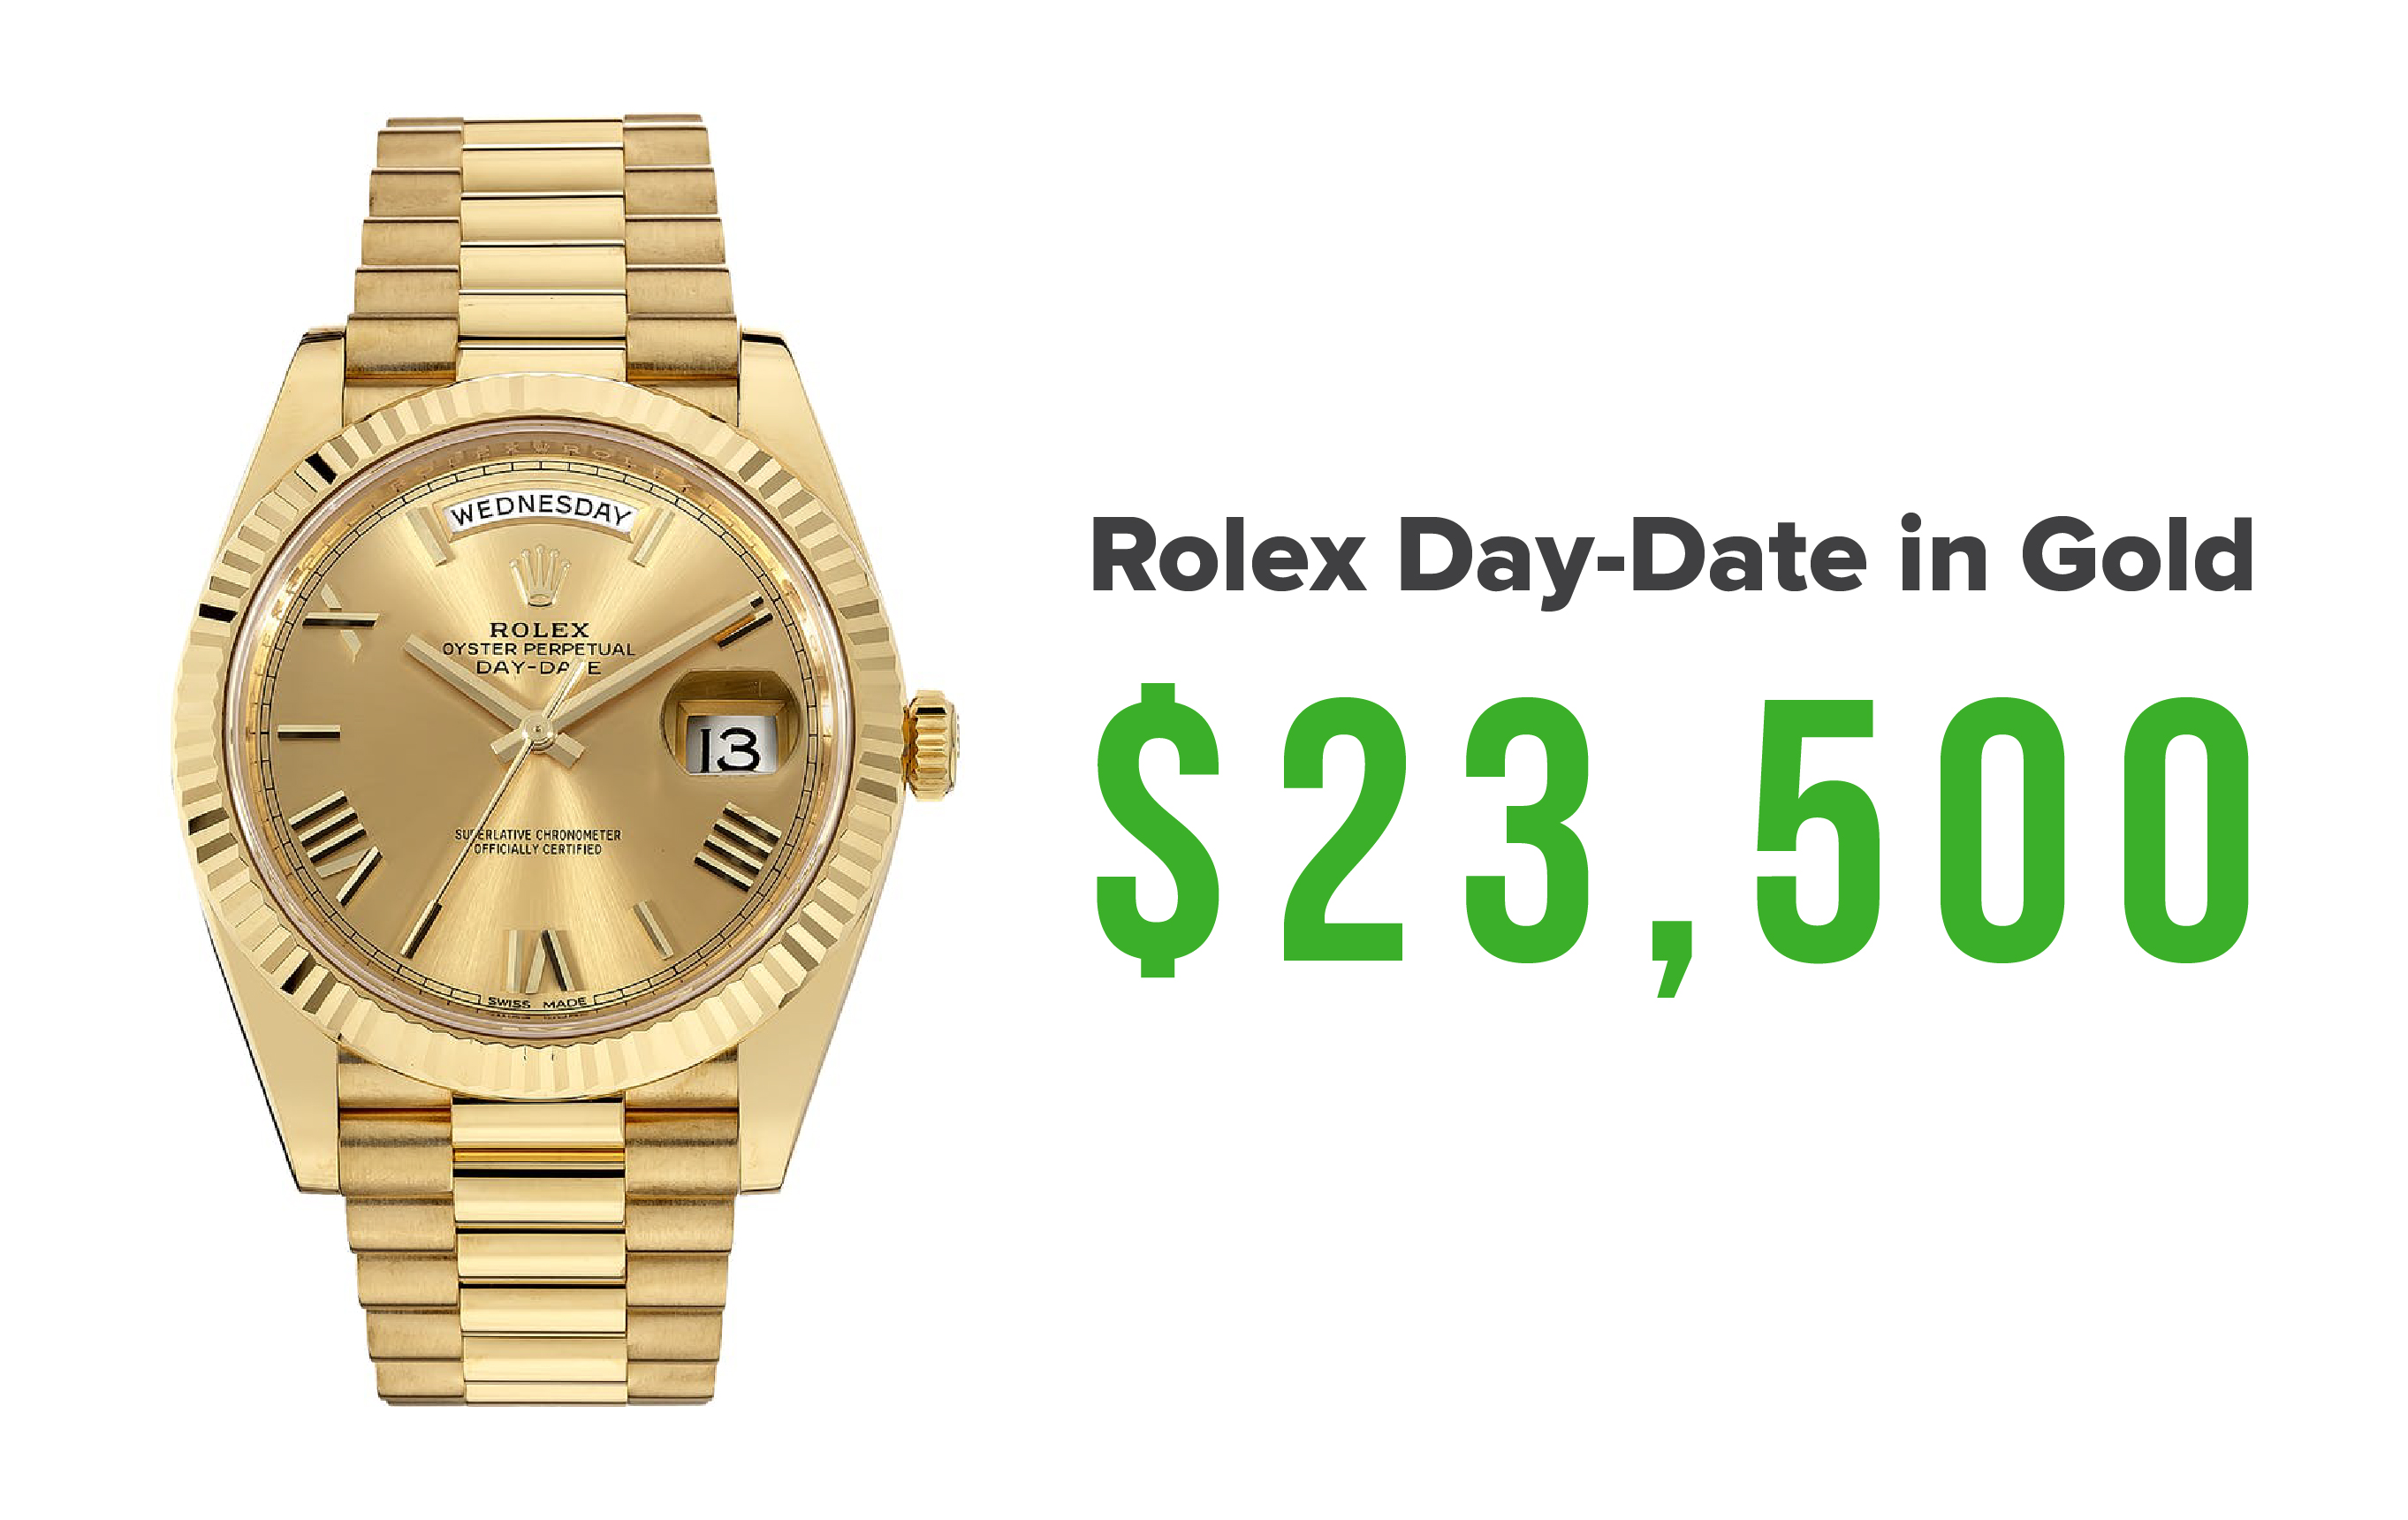 the rolex watch launch november in initial shinola world related very public crossed another with brand watches when first we fellow to year stockx s partnered detroit milestone banner news review